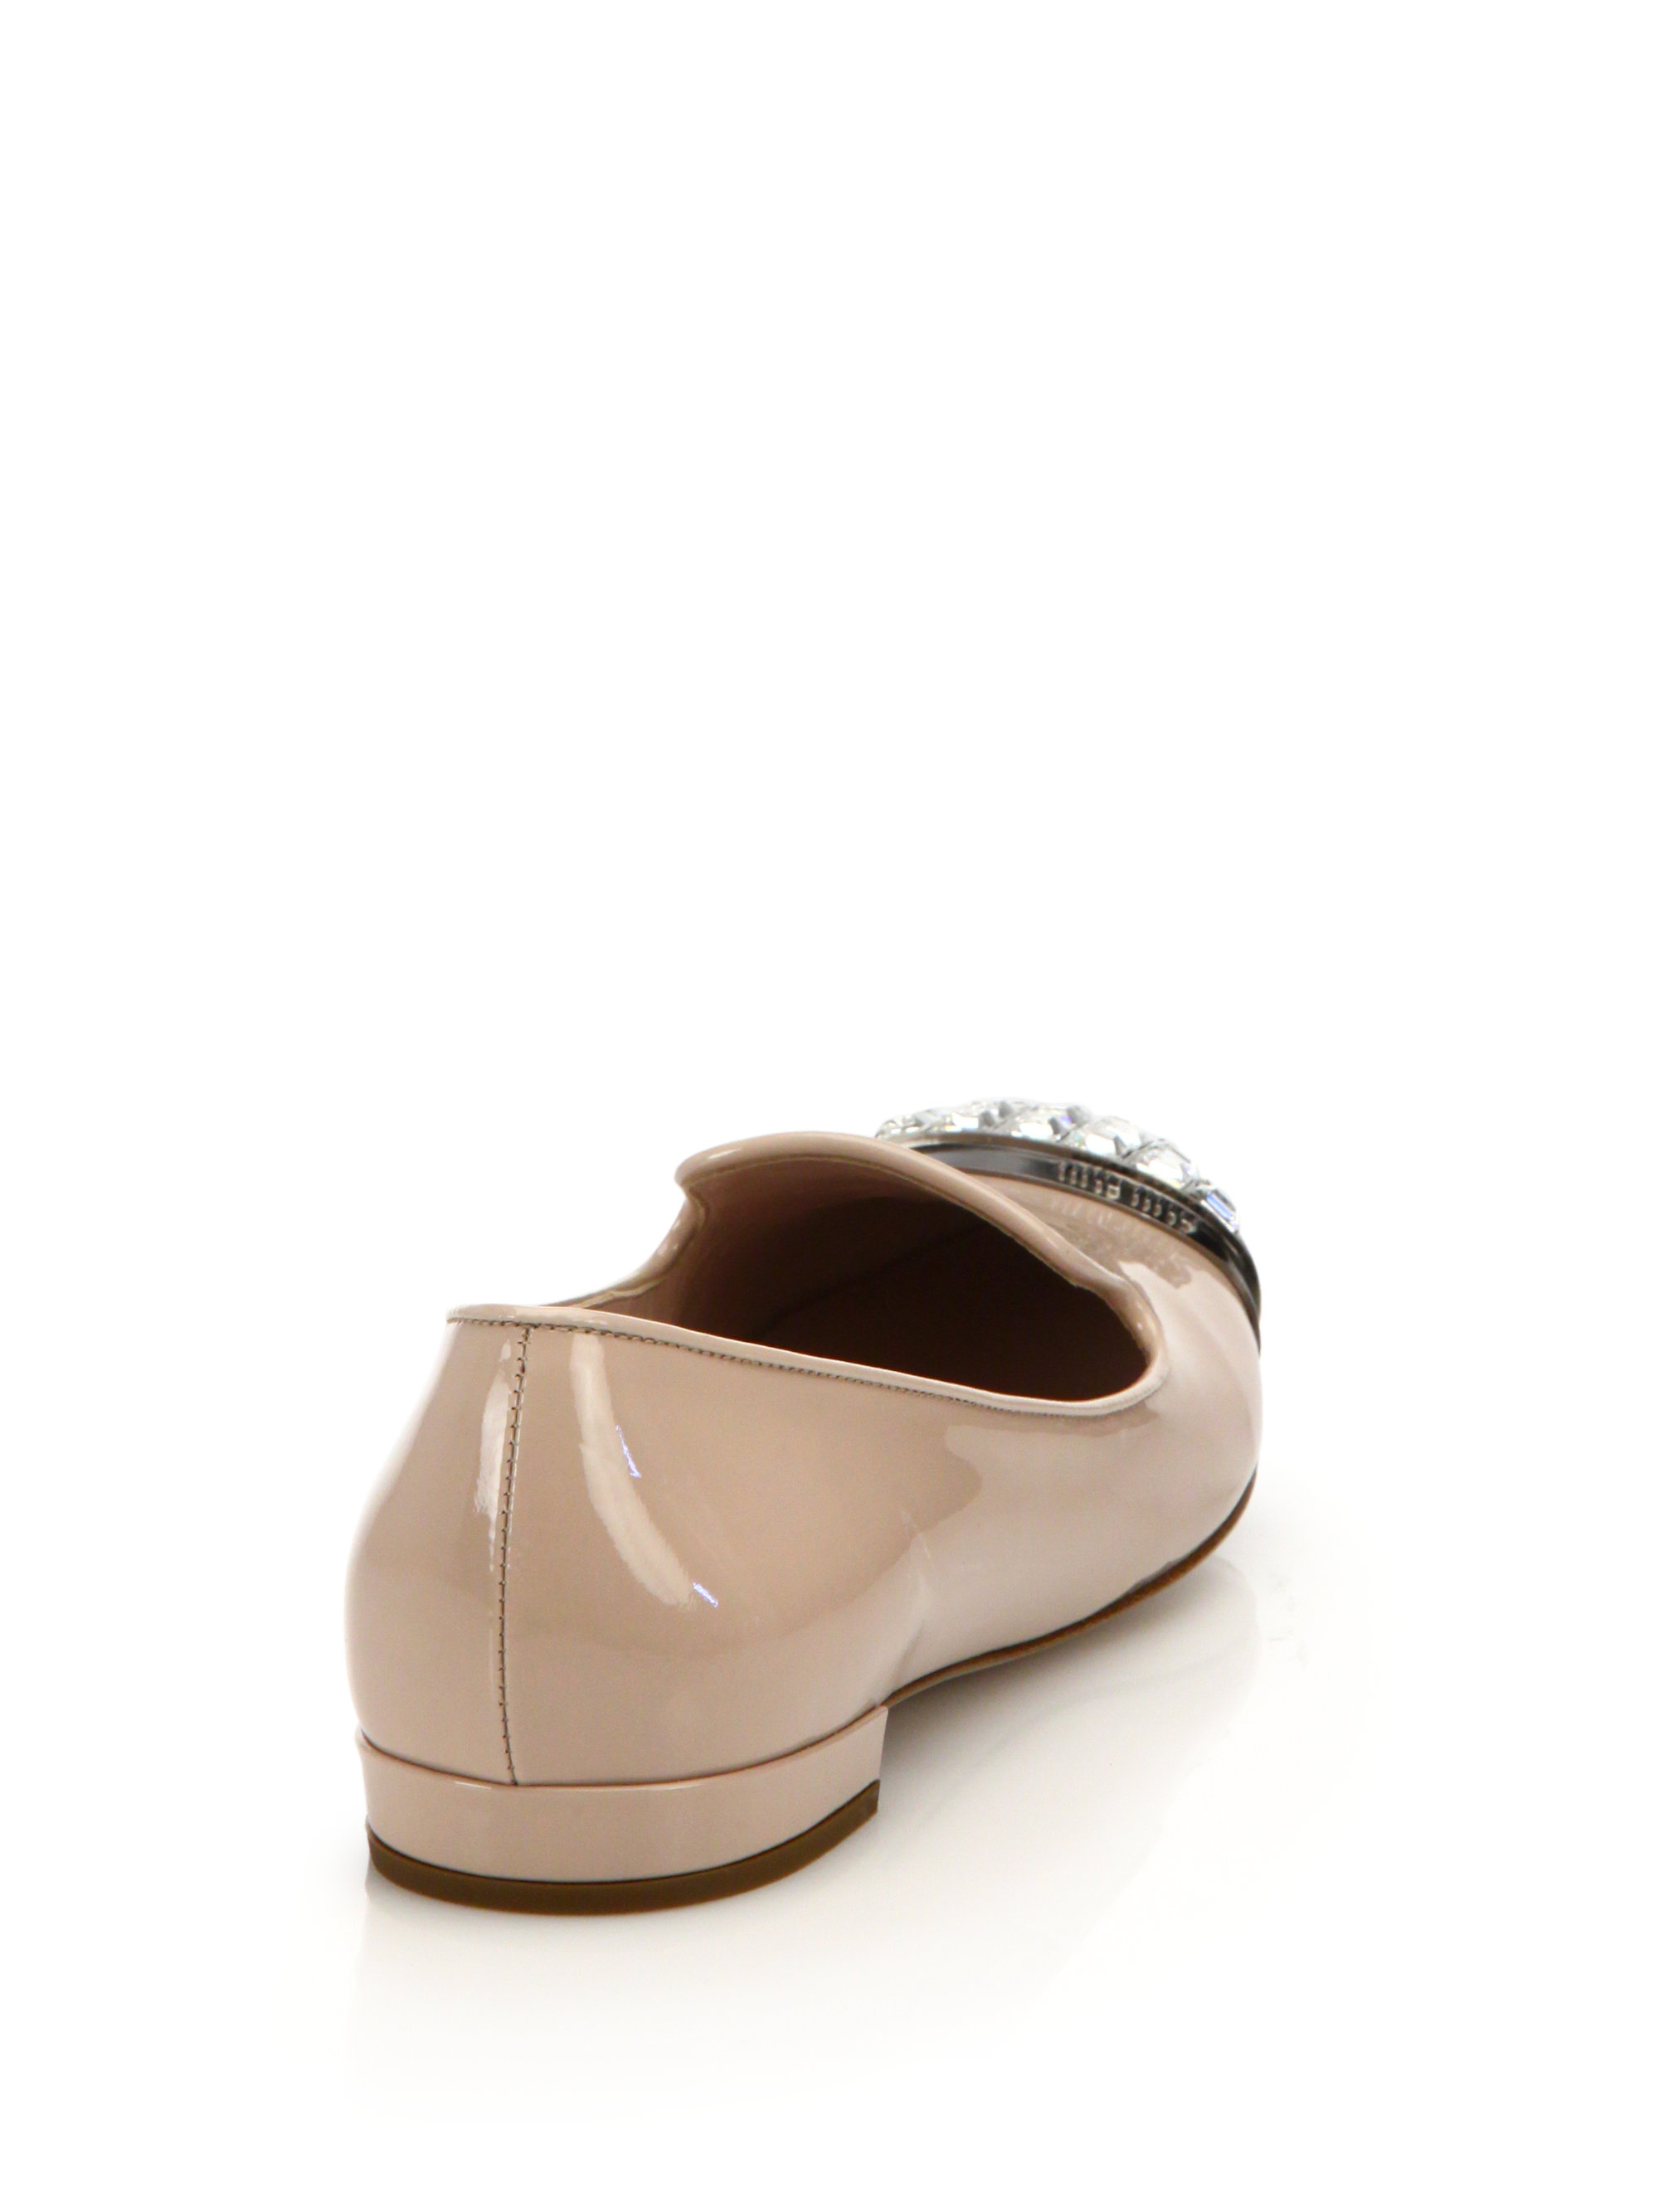 Miu Miu Crystal Patent Leather Loafers eO3uBtoamE